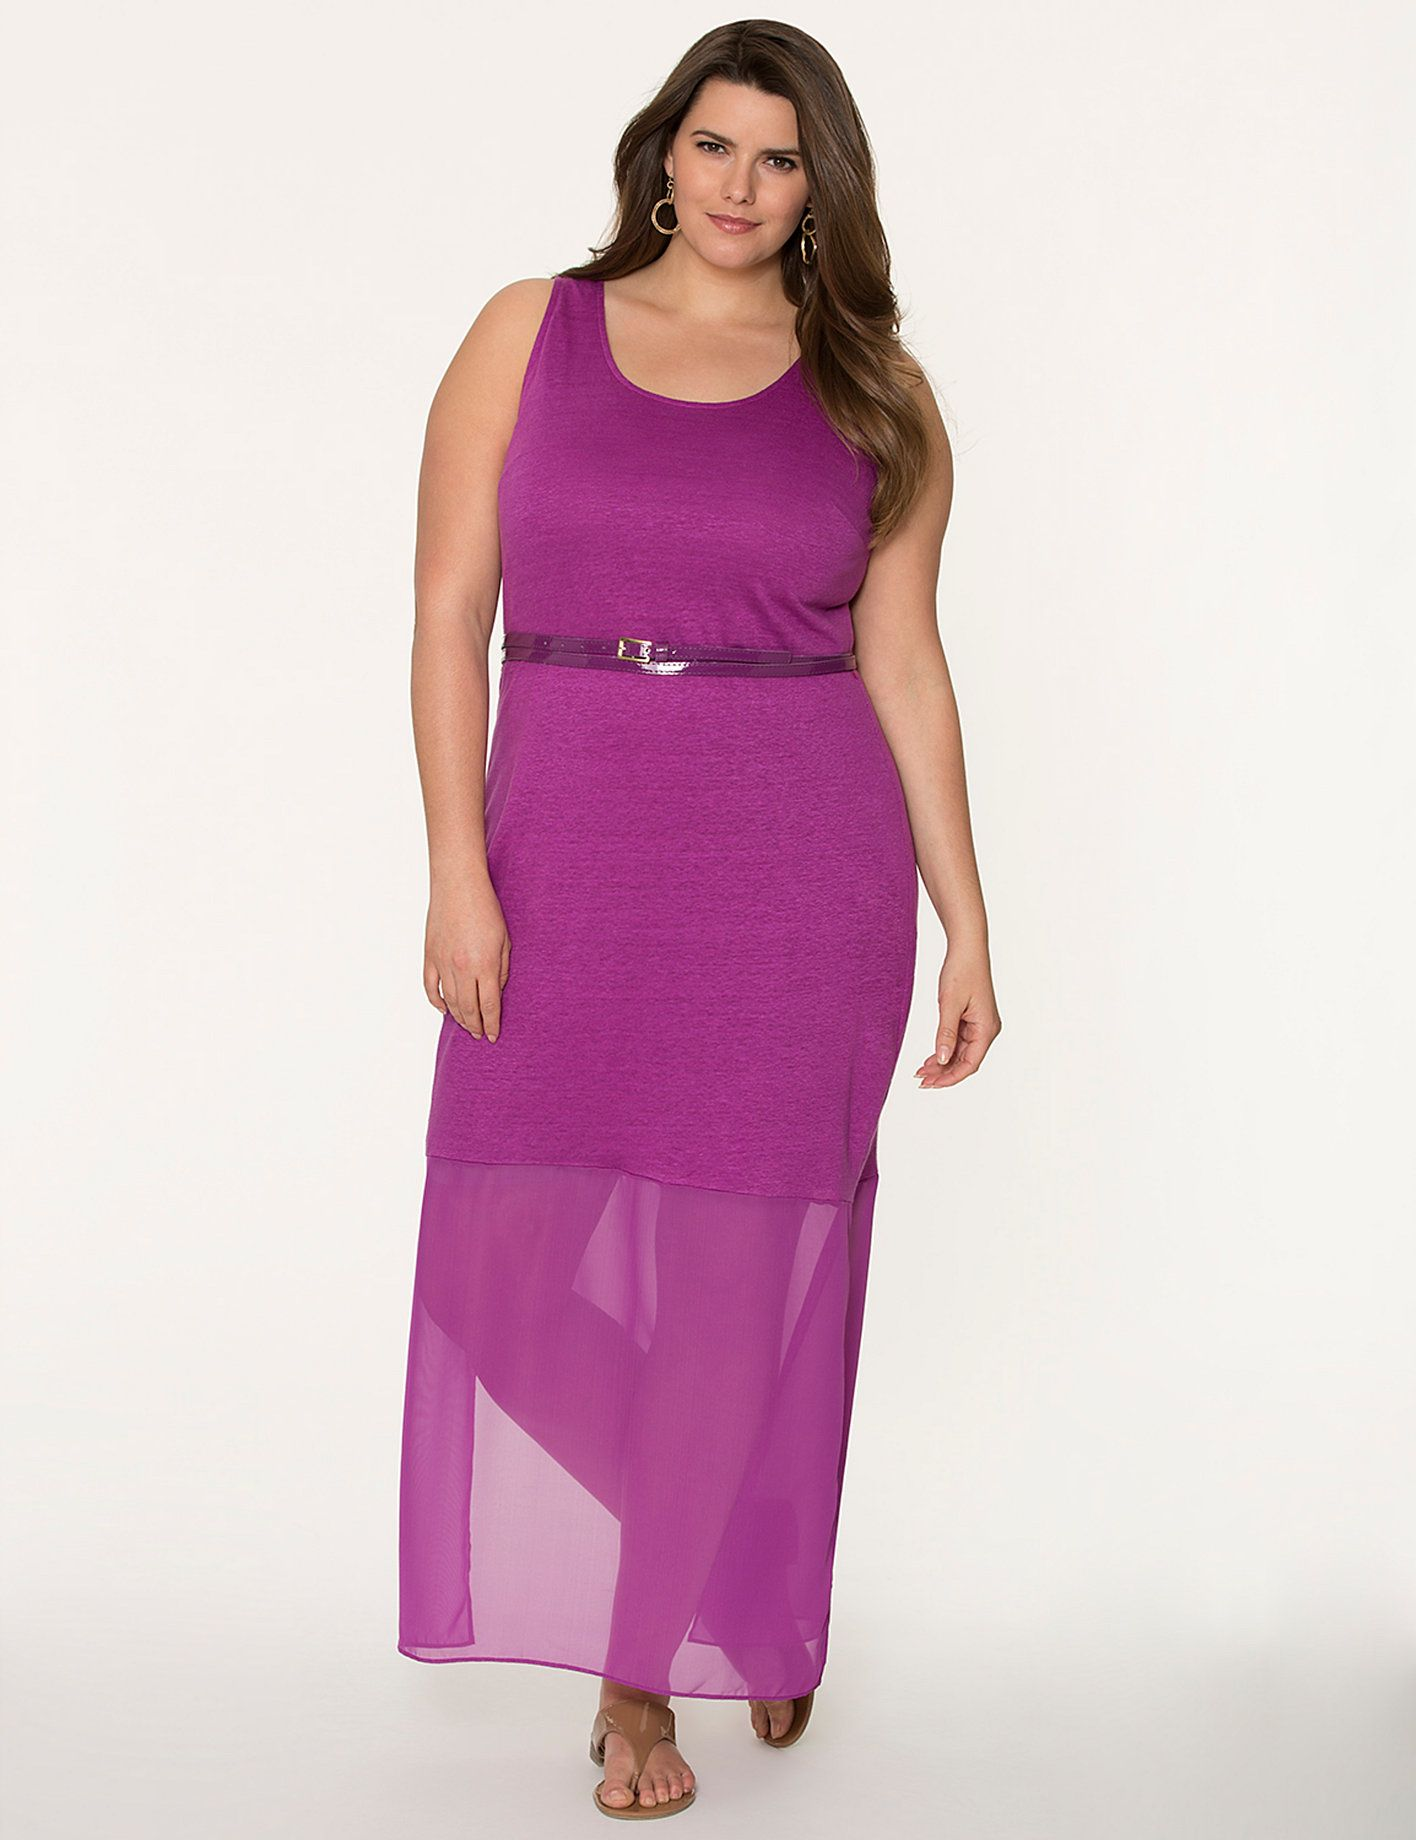 New Plus Size Dresses, Coats, Sweaters, Pants | Lane Bryant | Big is ...